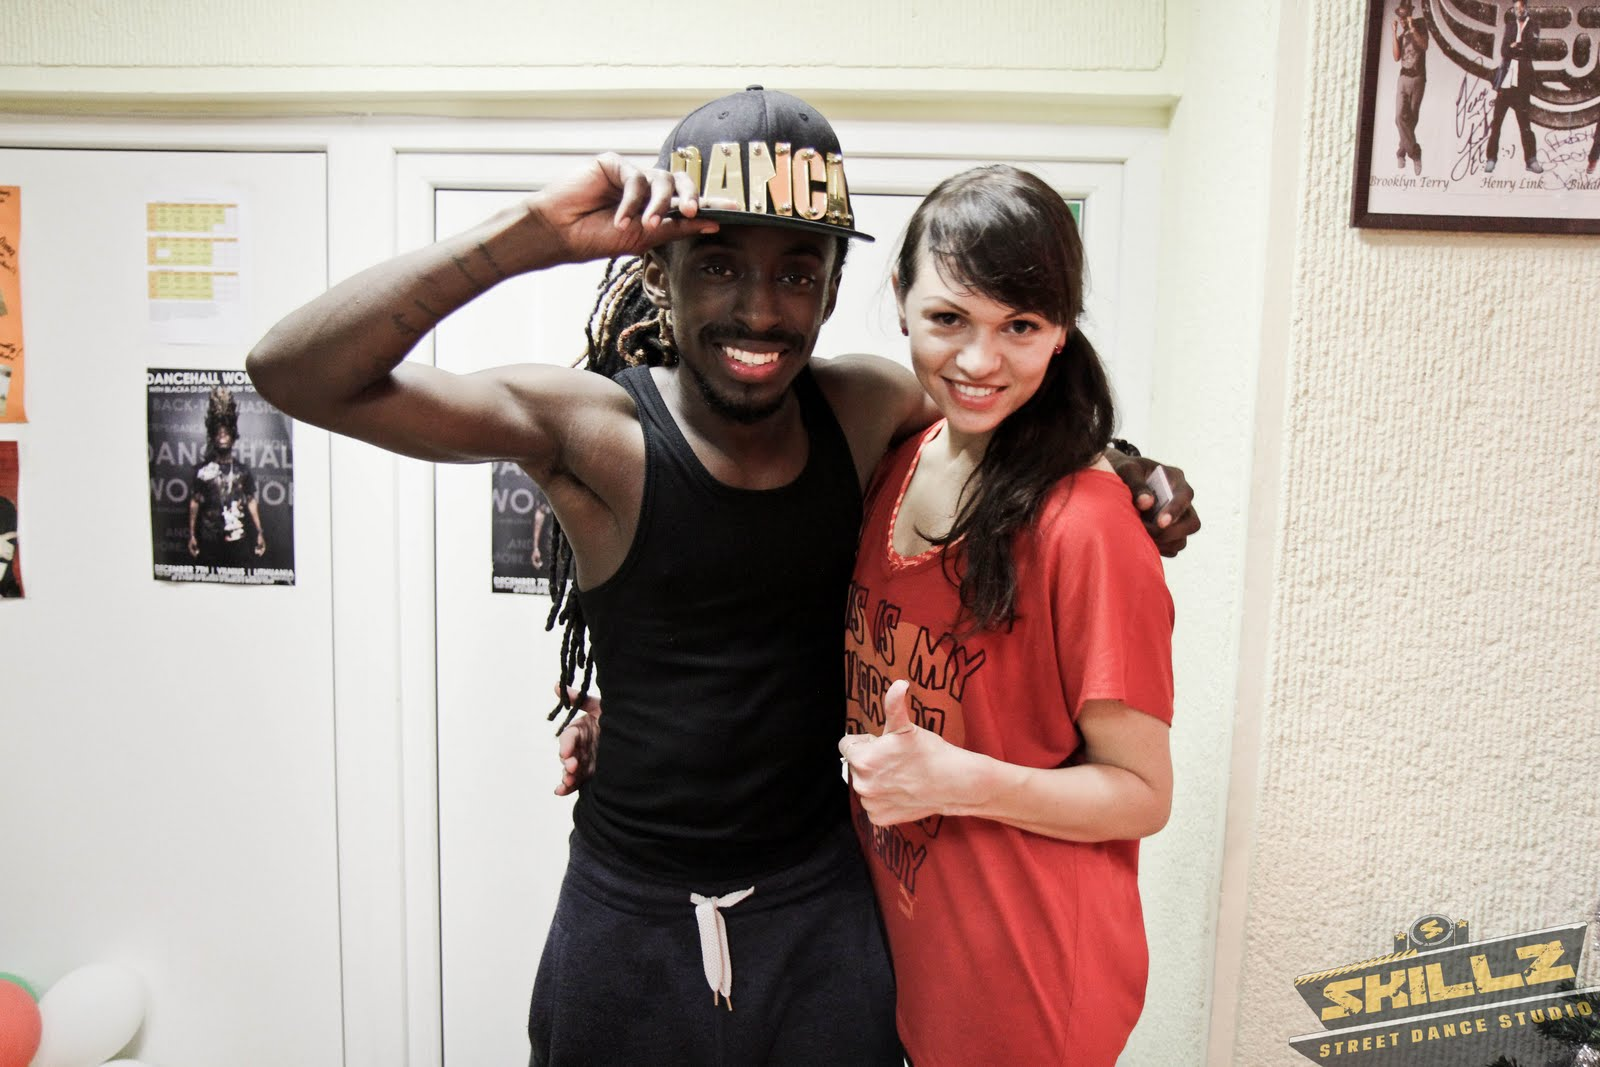 Dancehall workshop with Black Di Danca (USA, New Y - IMG_6780.jpg